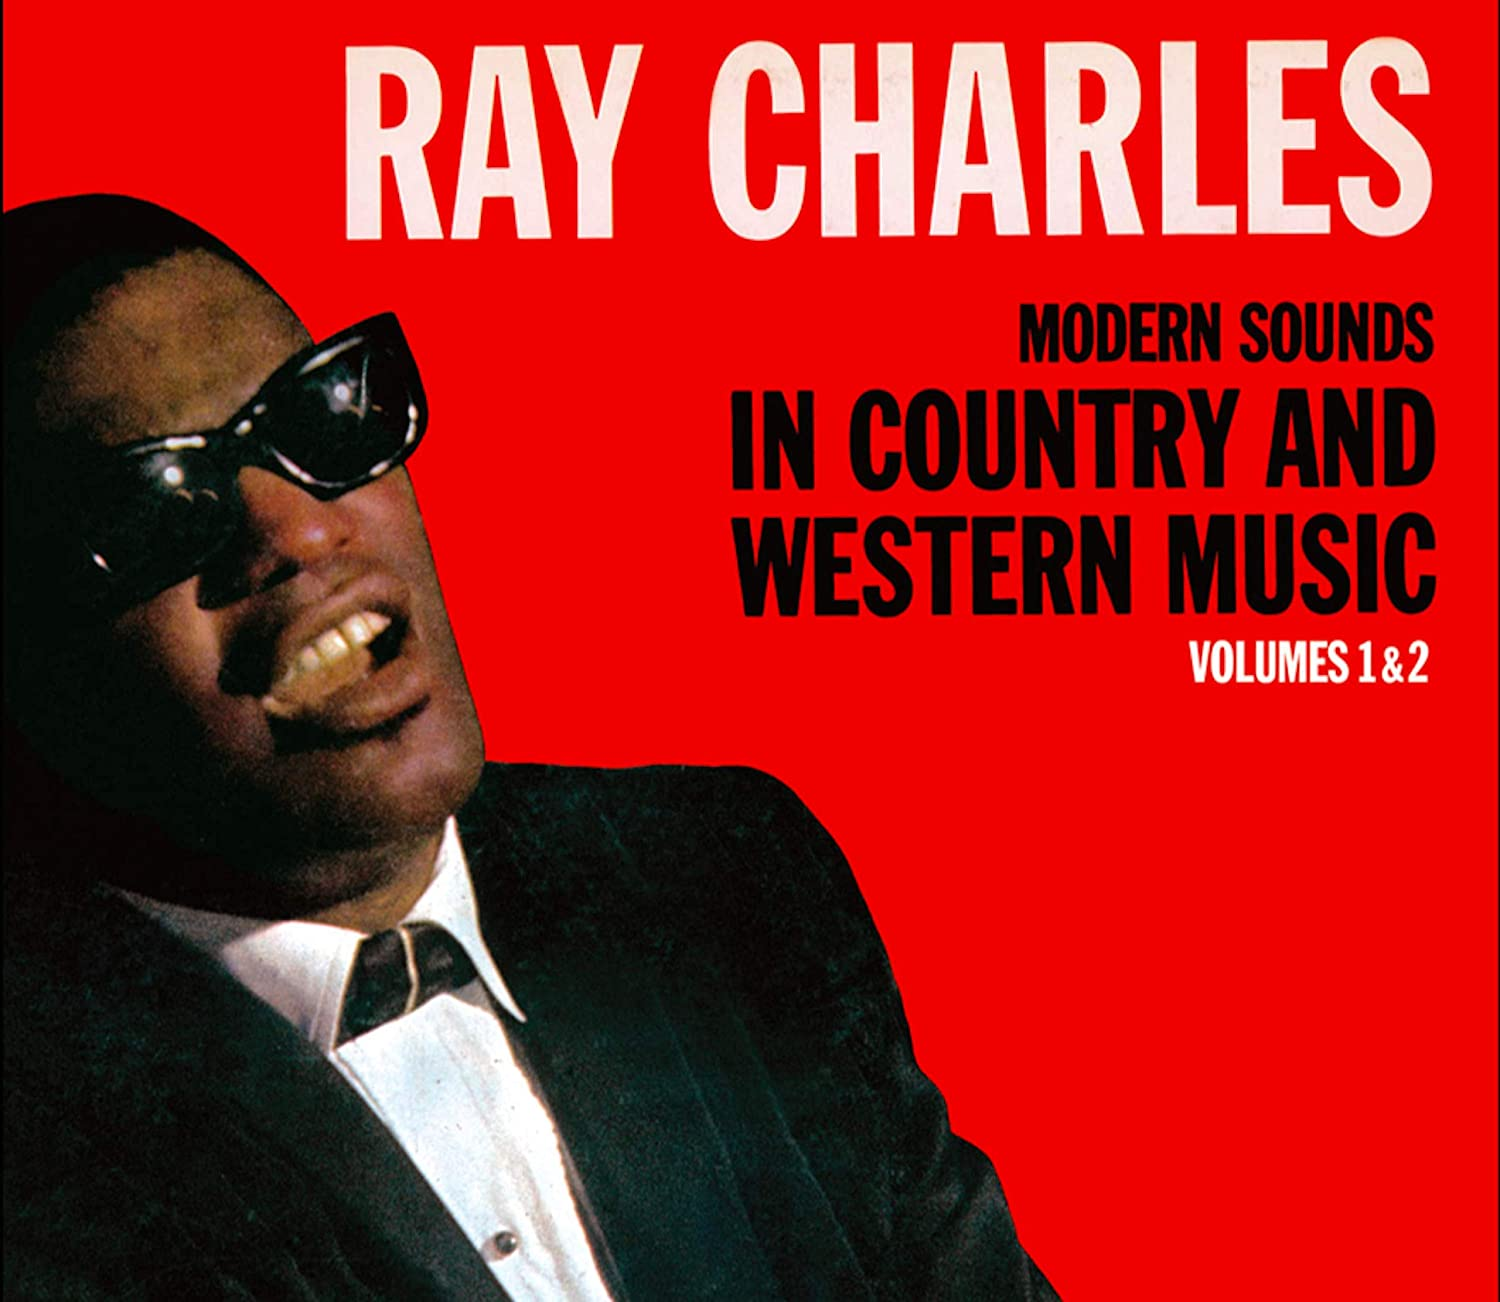 Modern Sounds In Country And Western Music, Vol. 1 & 2 [2 LP][Deluxe]